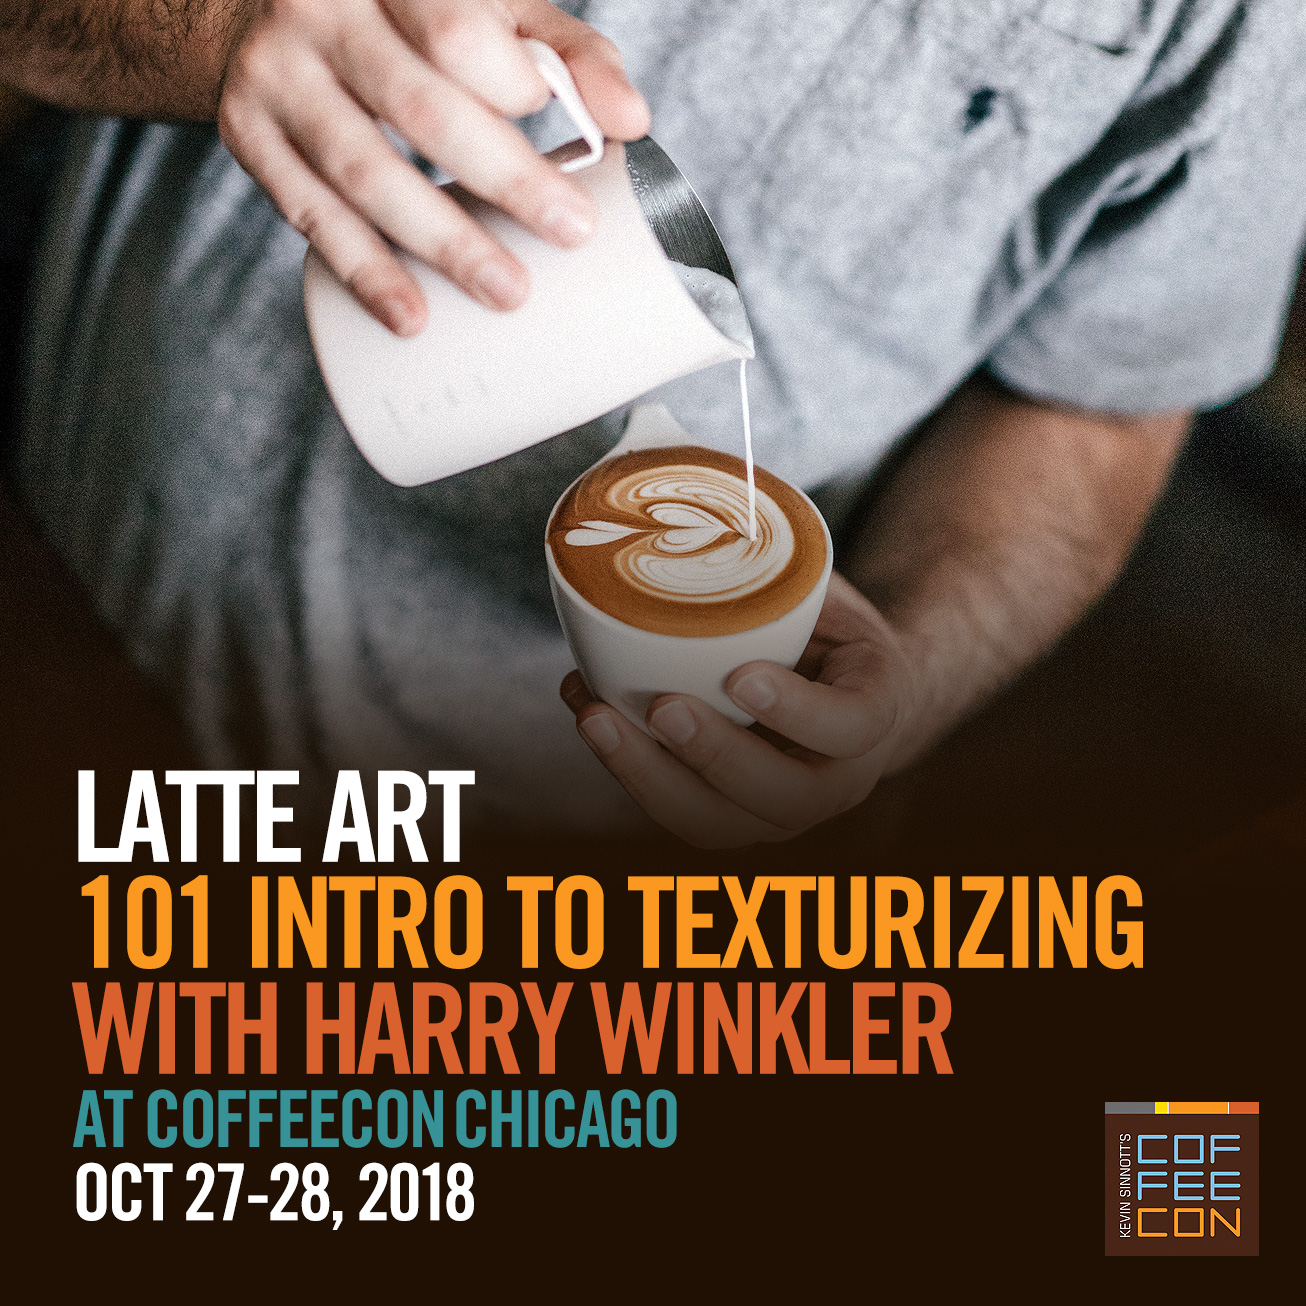 Latte Art 101 with Harry Winkler at CoffeeConChi 2018